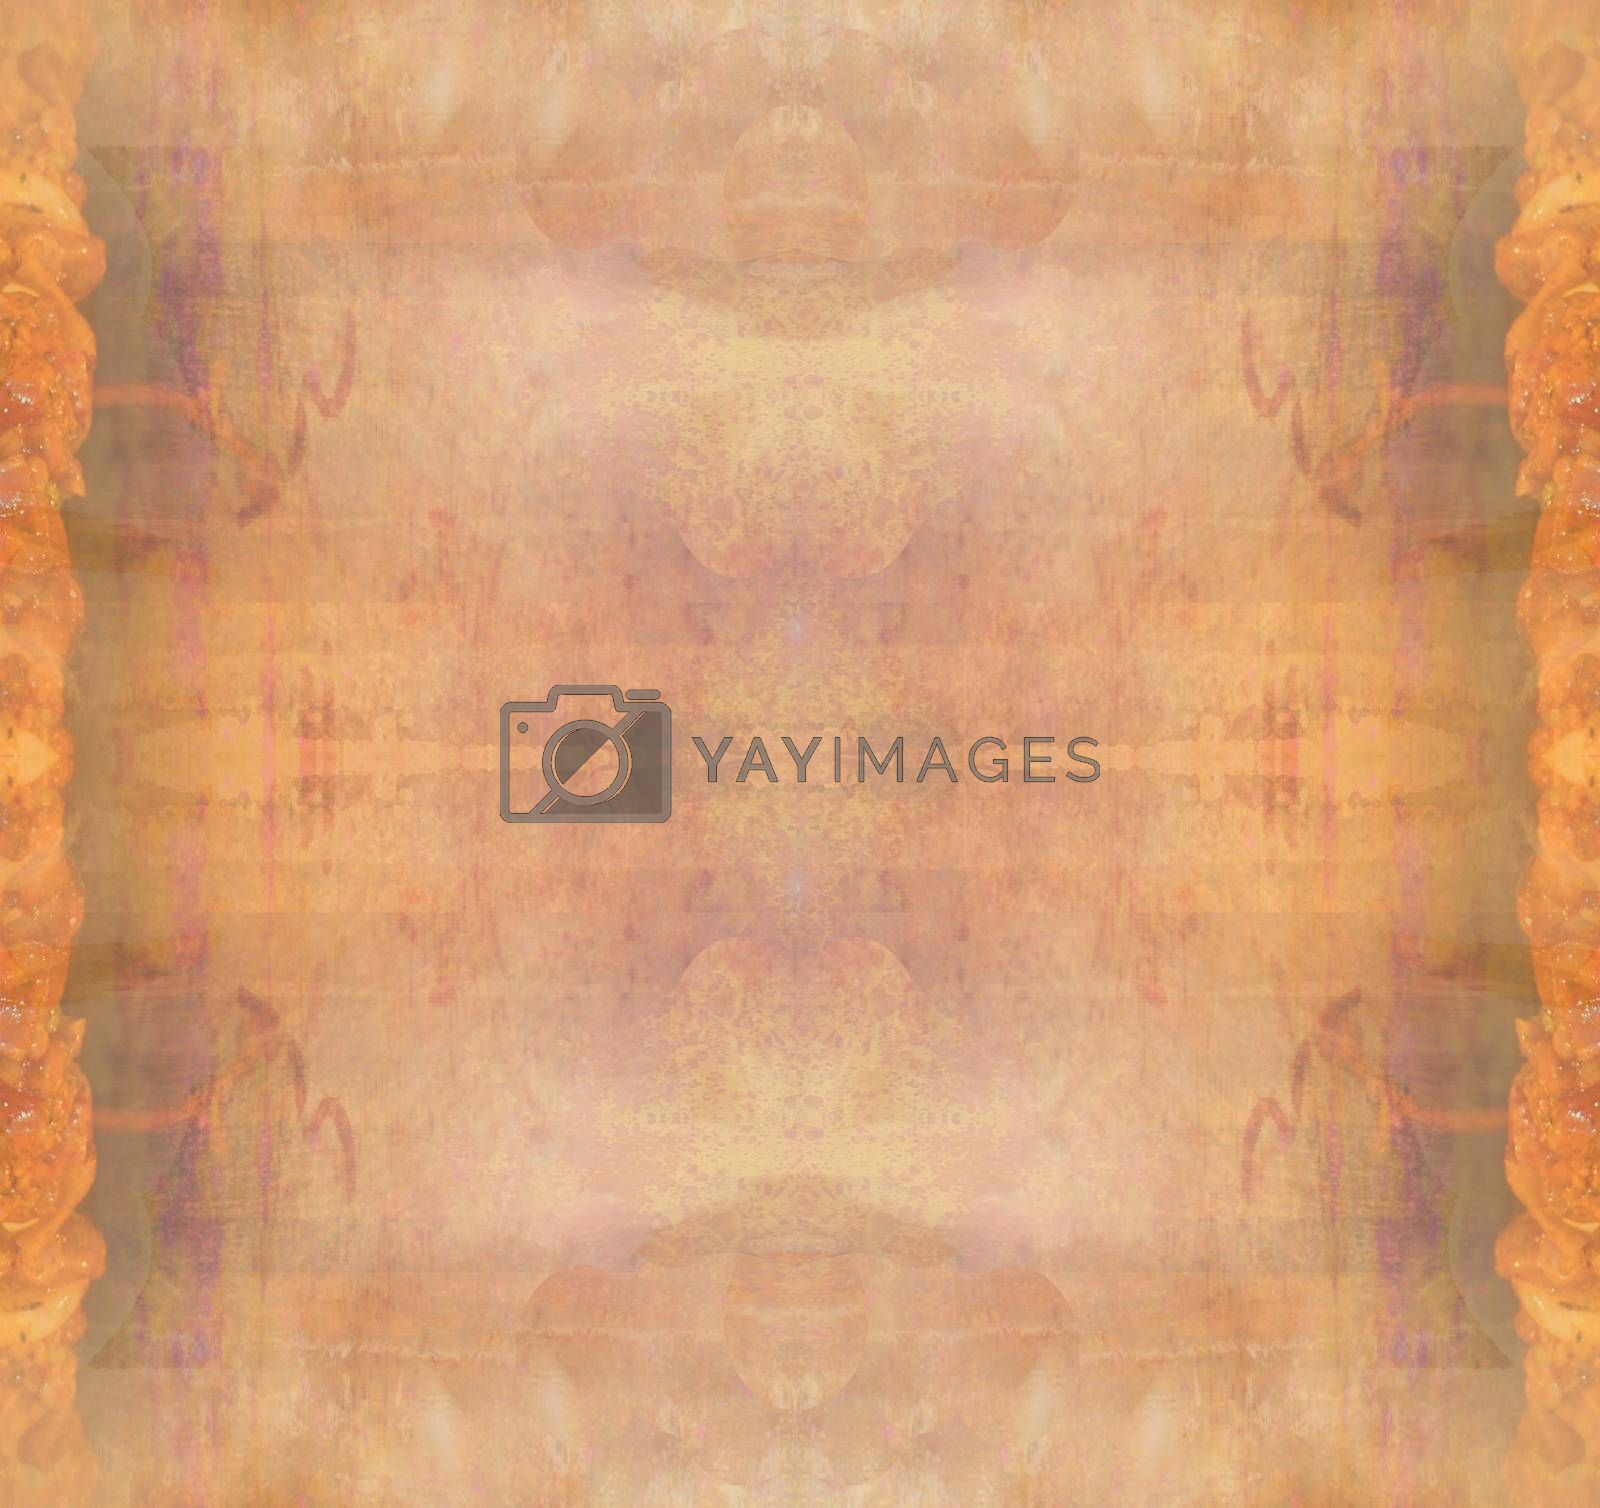 Royalty free image of grunge background with space for text or image  by JackyBrown